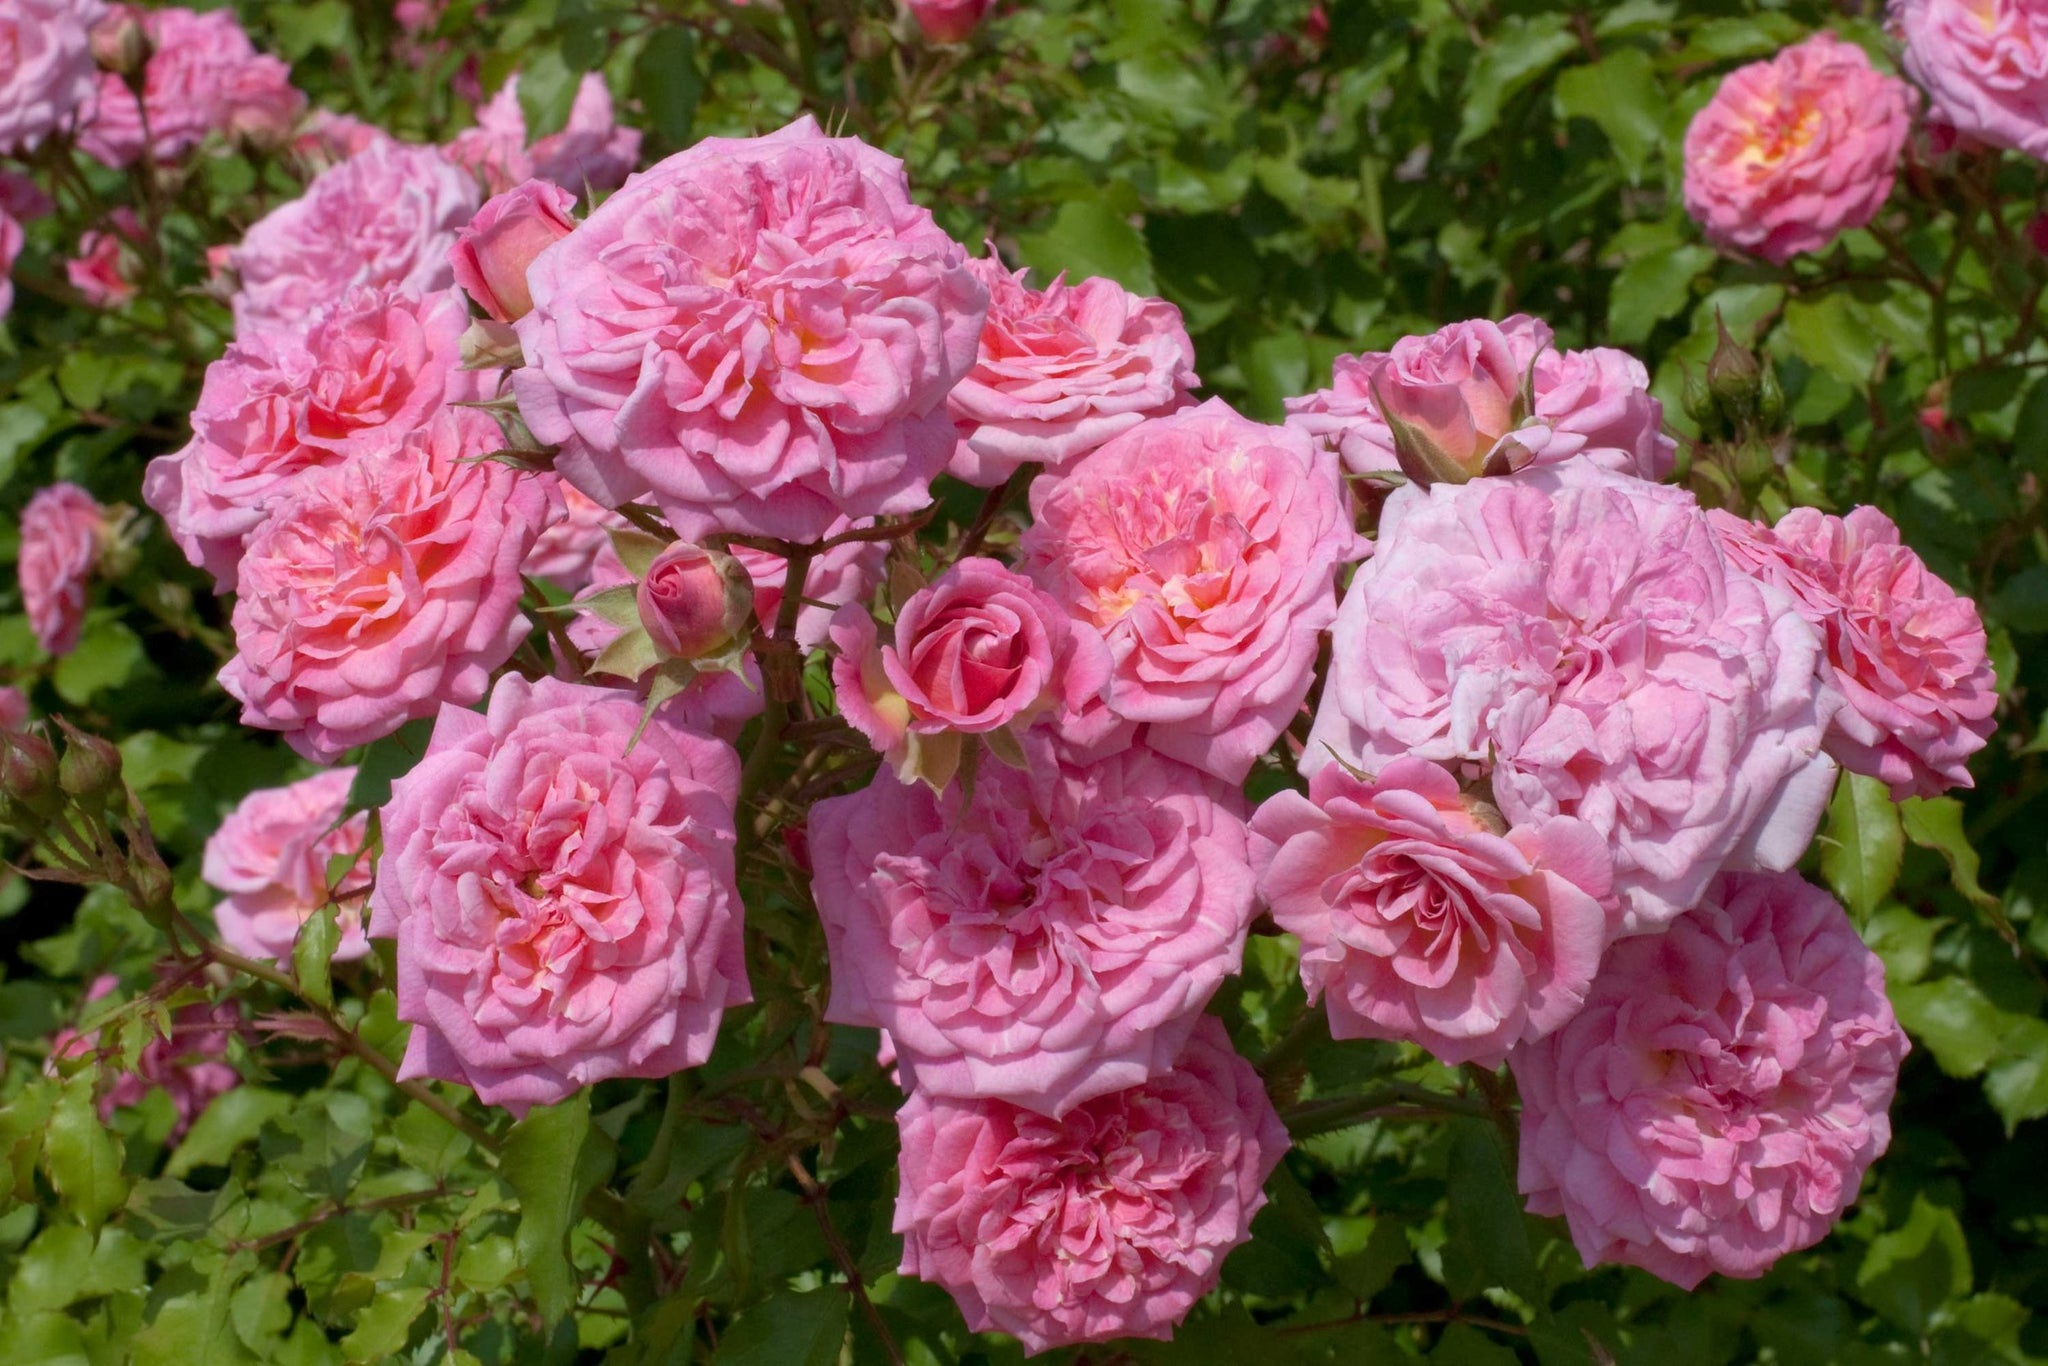 (1 Gallon)   Sweet DRIFT ROSE-low-growing with distinctive mounded flowers that reach 1 ½' in height with a 3' spread.  Deep pink flowers with a soft faded center bloom in abundance throughout the season.